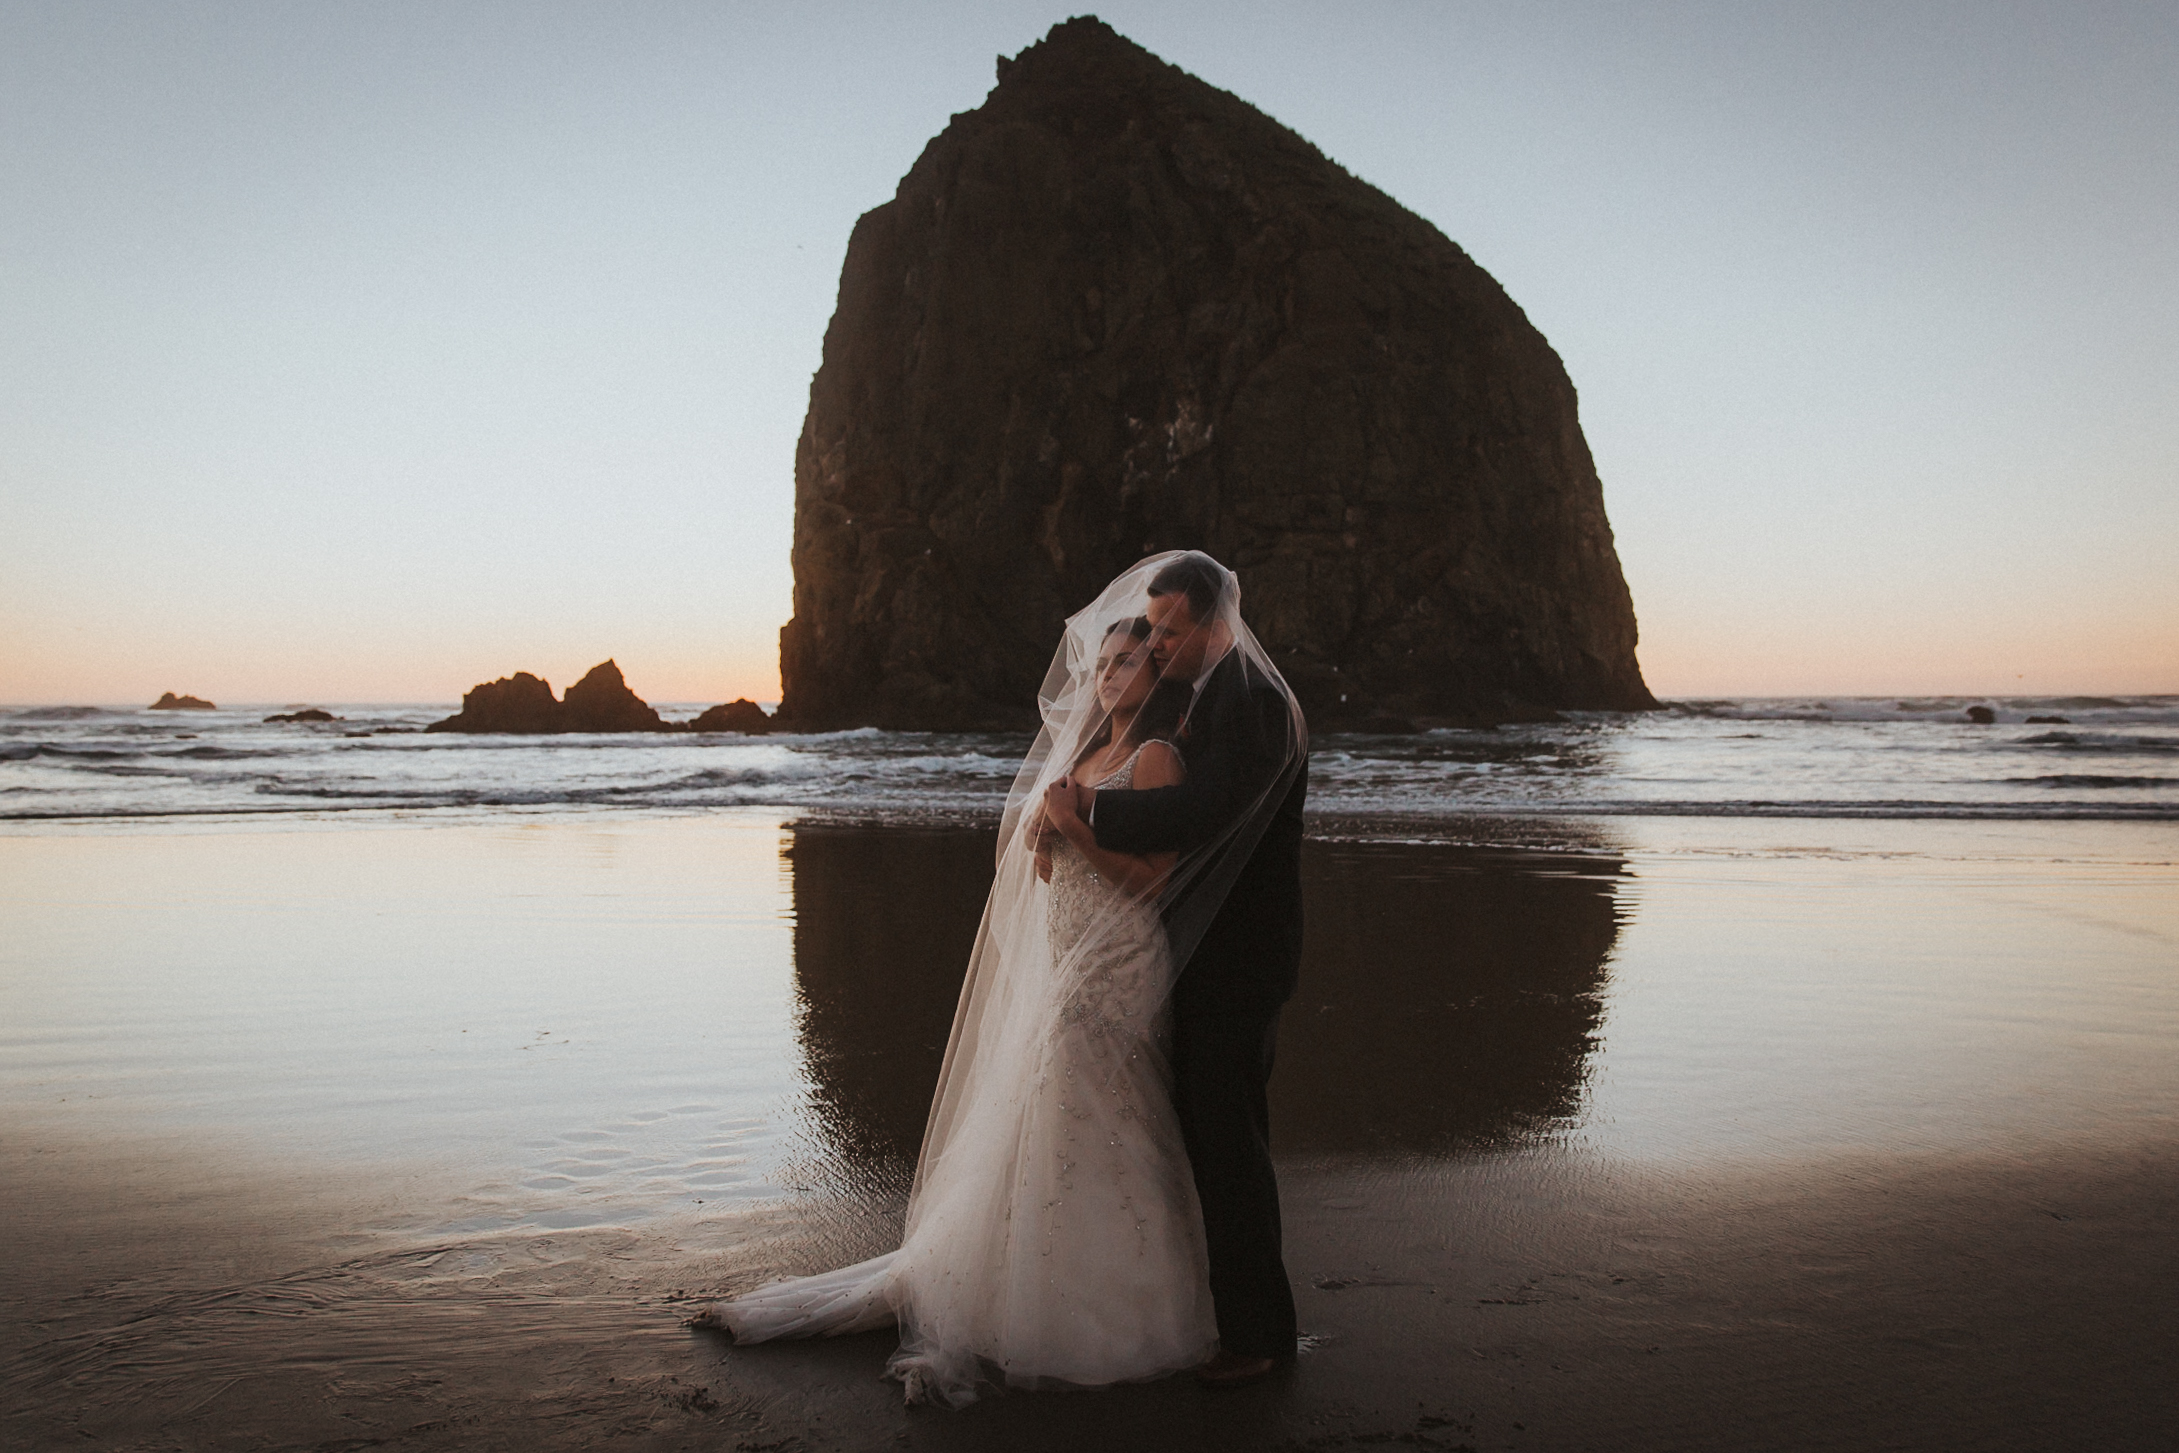 Cannon_Beach_wedding_portland_photography_alfred_tang_Photographer-5.jpg